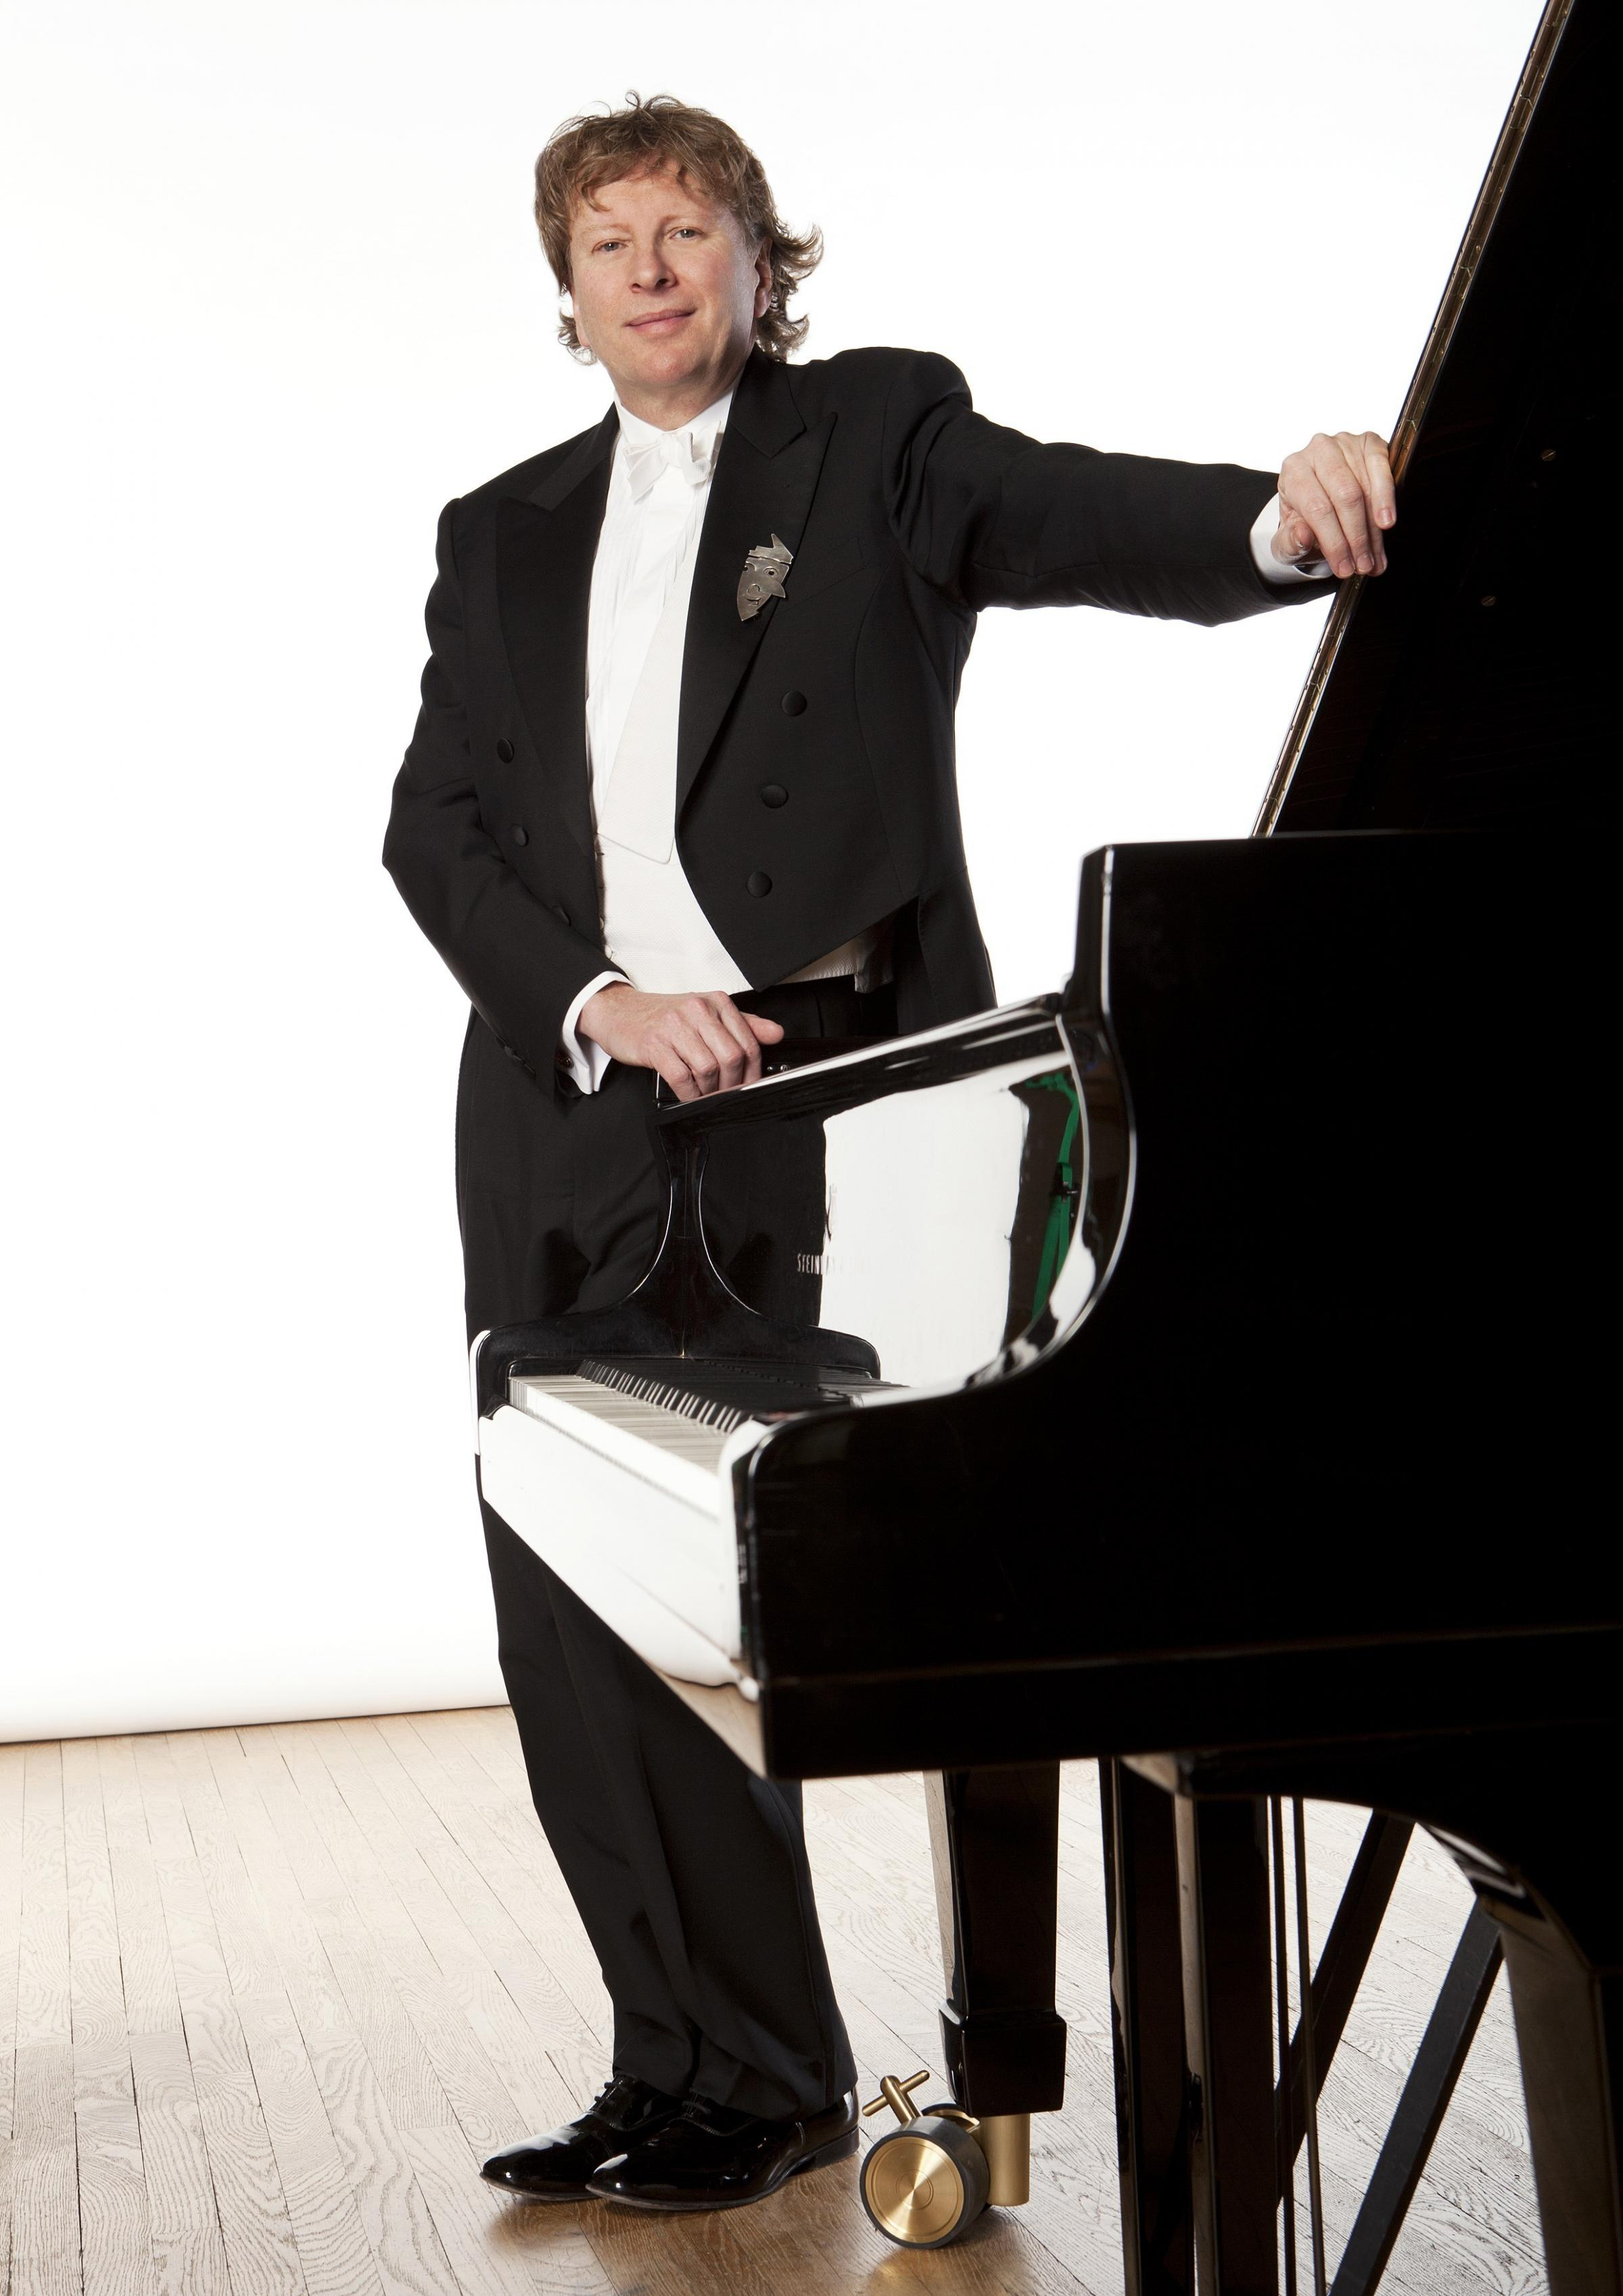 Acclaimed pianist Piers Lane performs Keswick Music Society's final concert of the season at Theatre by the Lake on Sunday, April 22